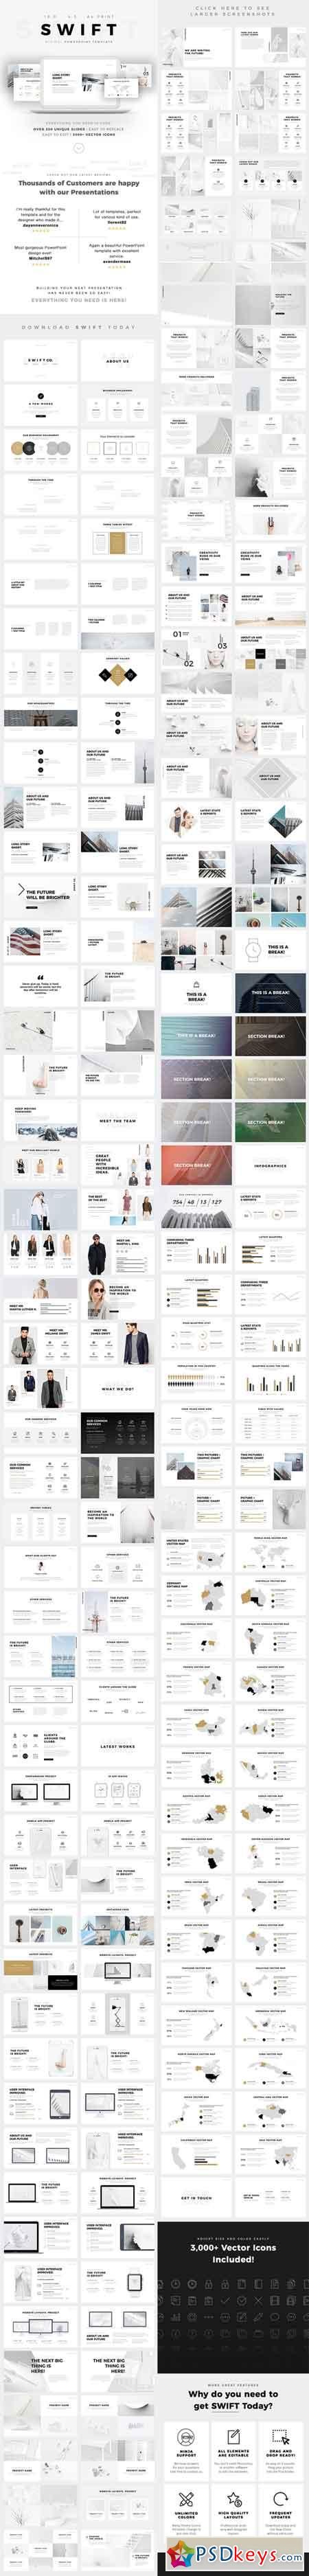 Swift Minimal PowerPoint Template Builder 19432778